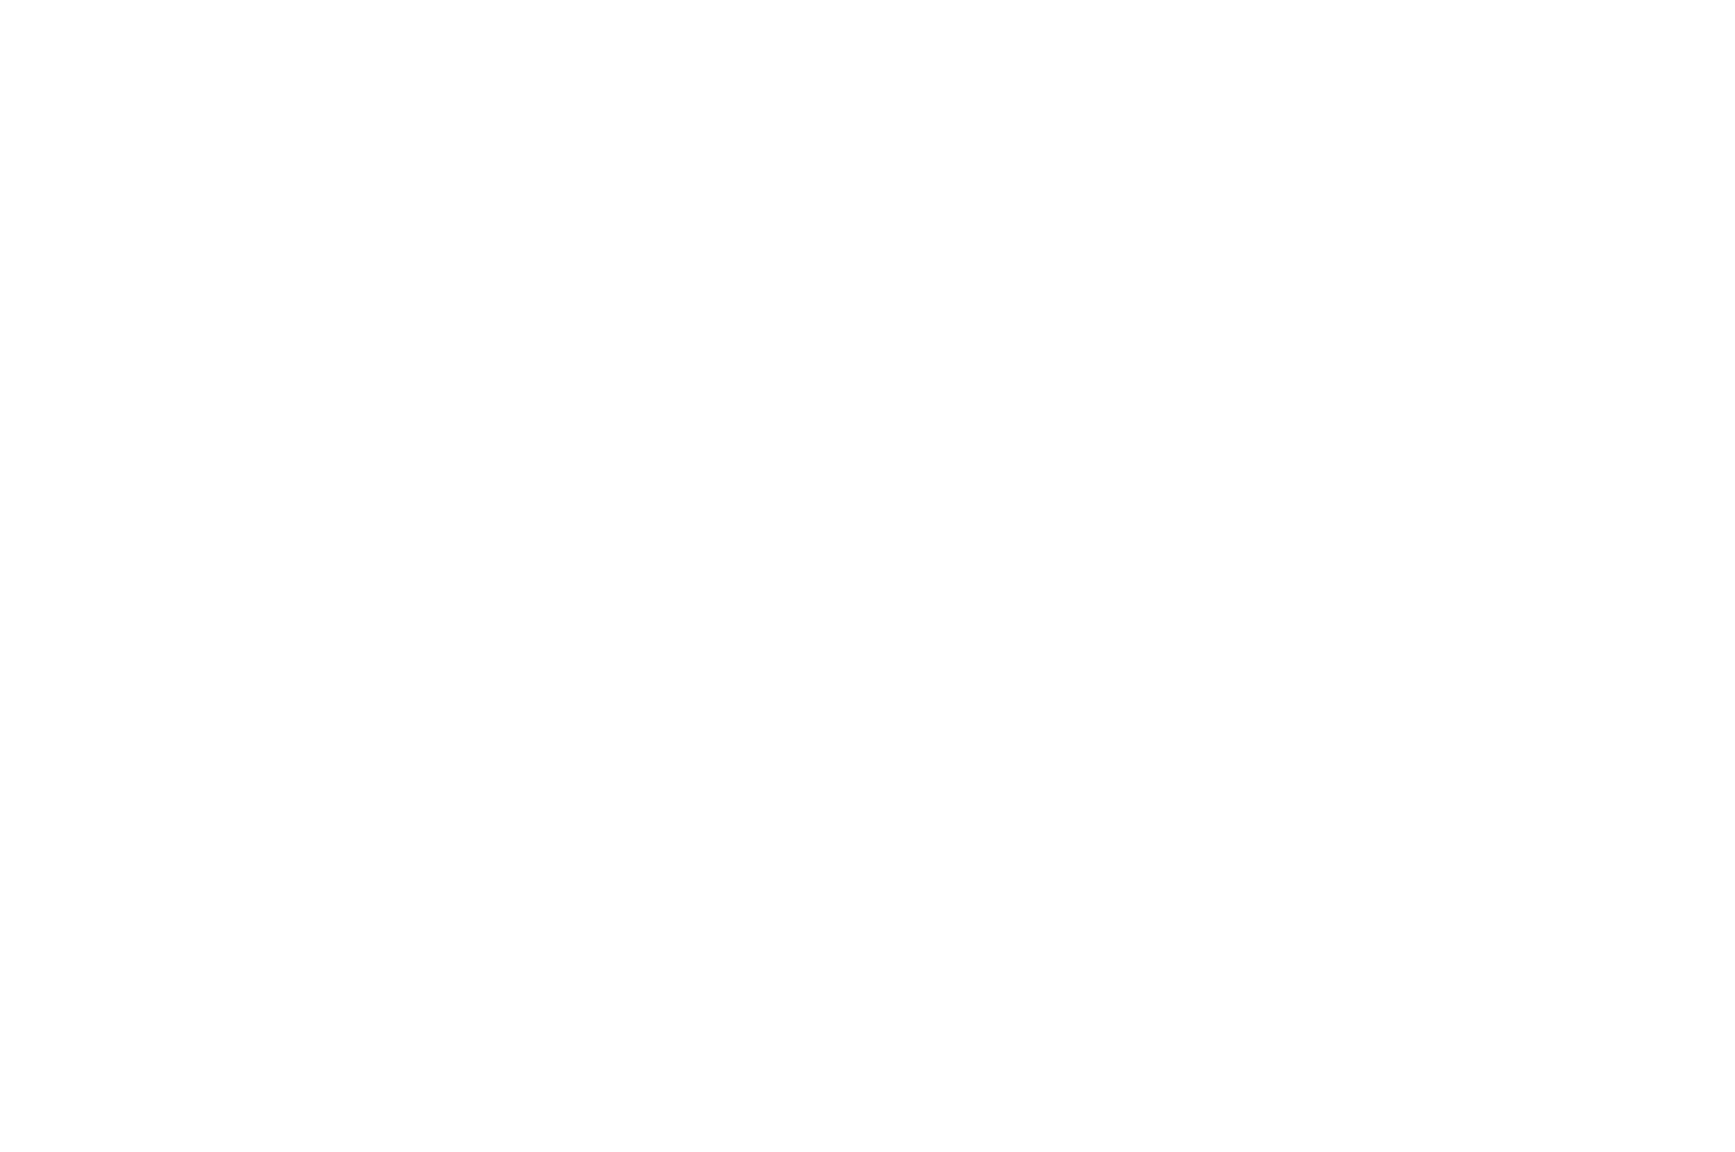 OFFICIAL SELECTION - Horror Bowl Movie Awards - 2019.png